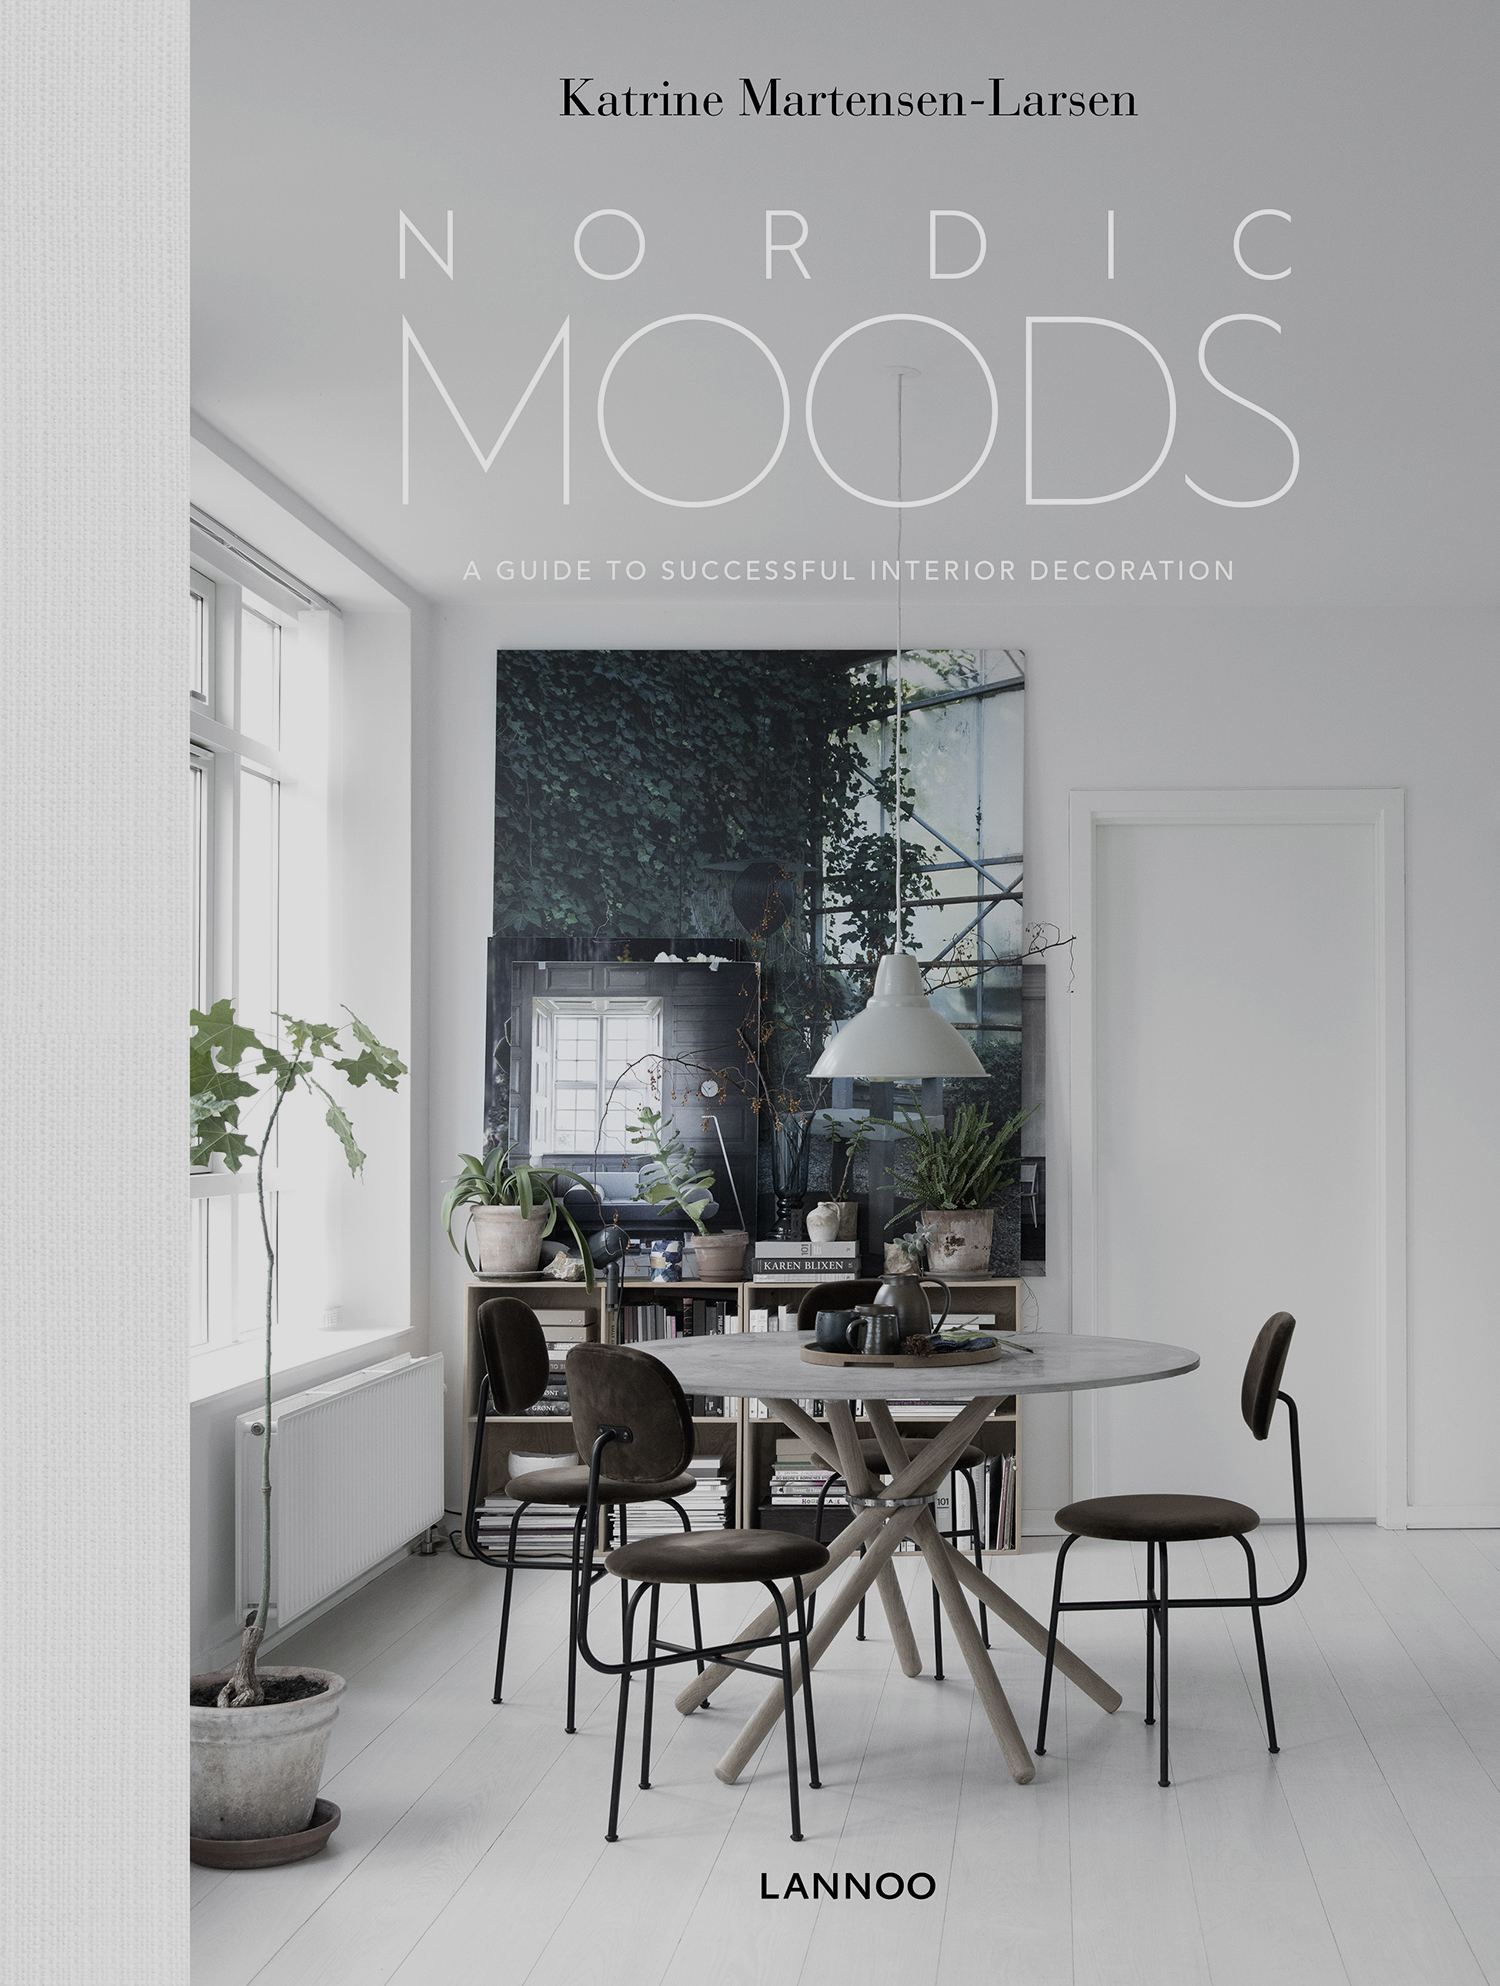 AUGUST 2019  NORDIC MOODS - BOOK RELEASE